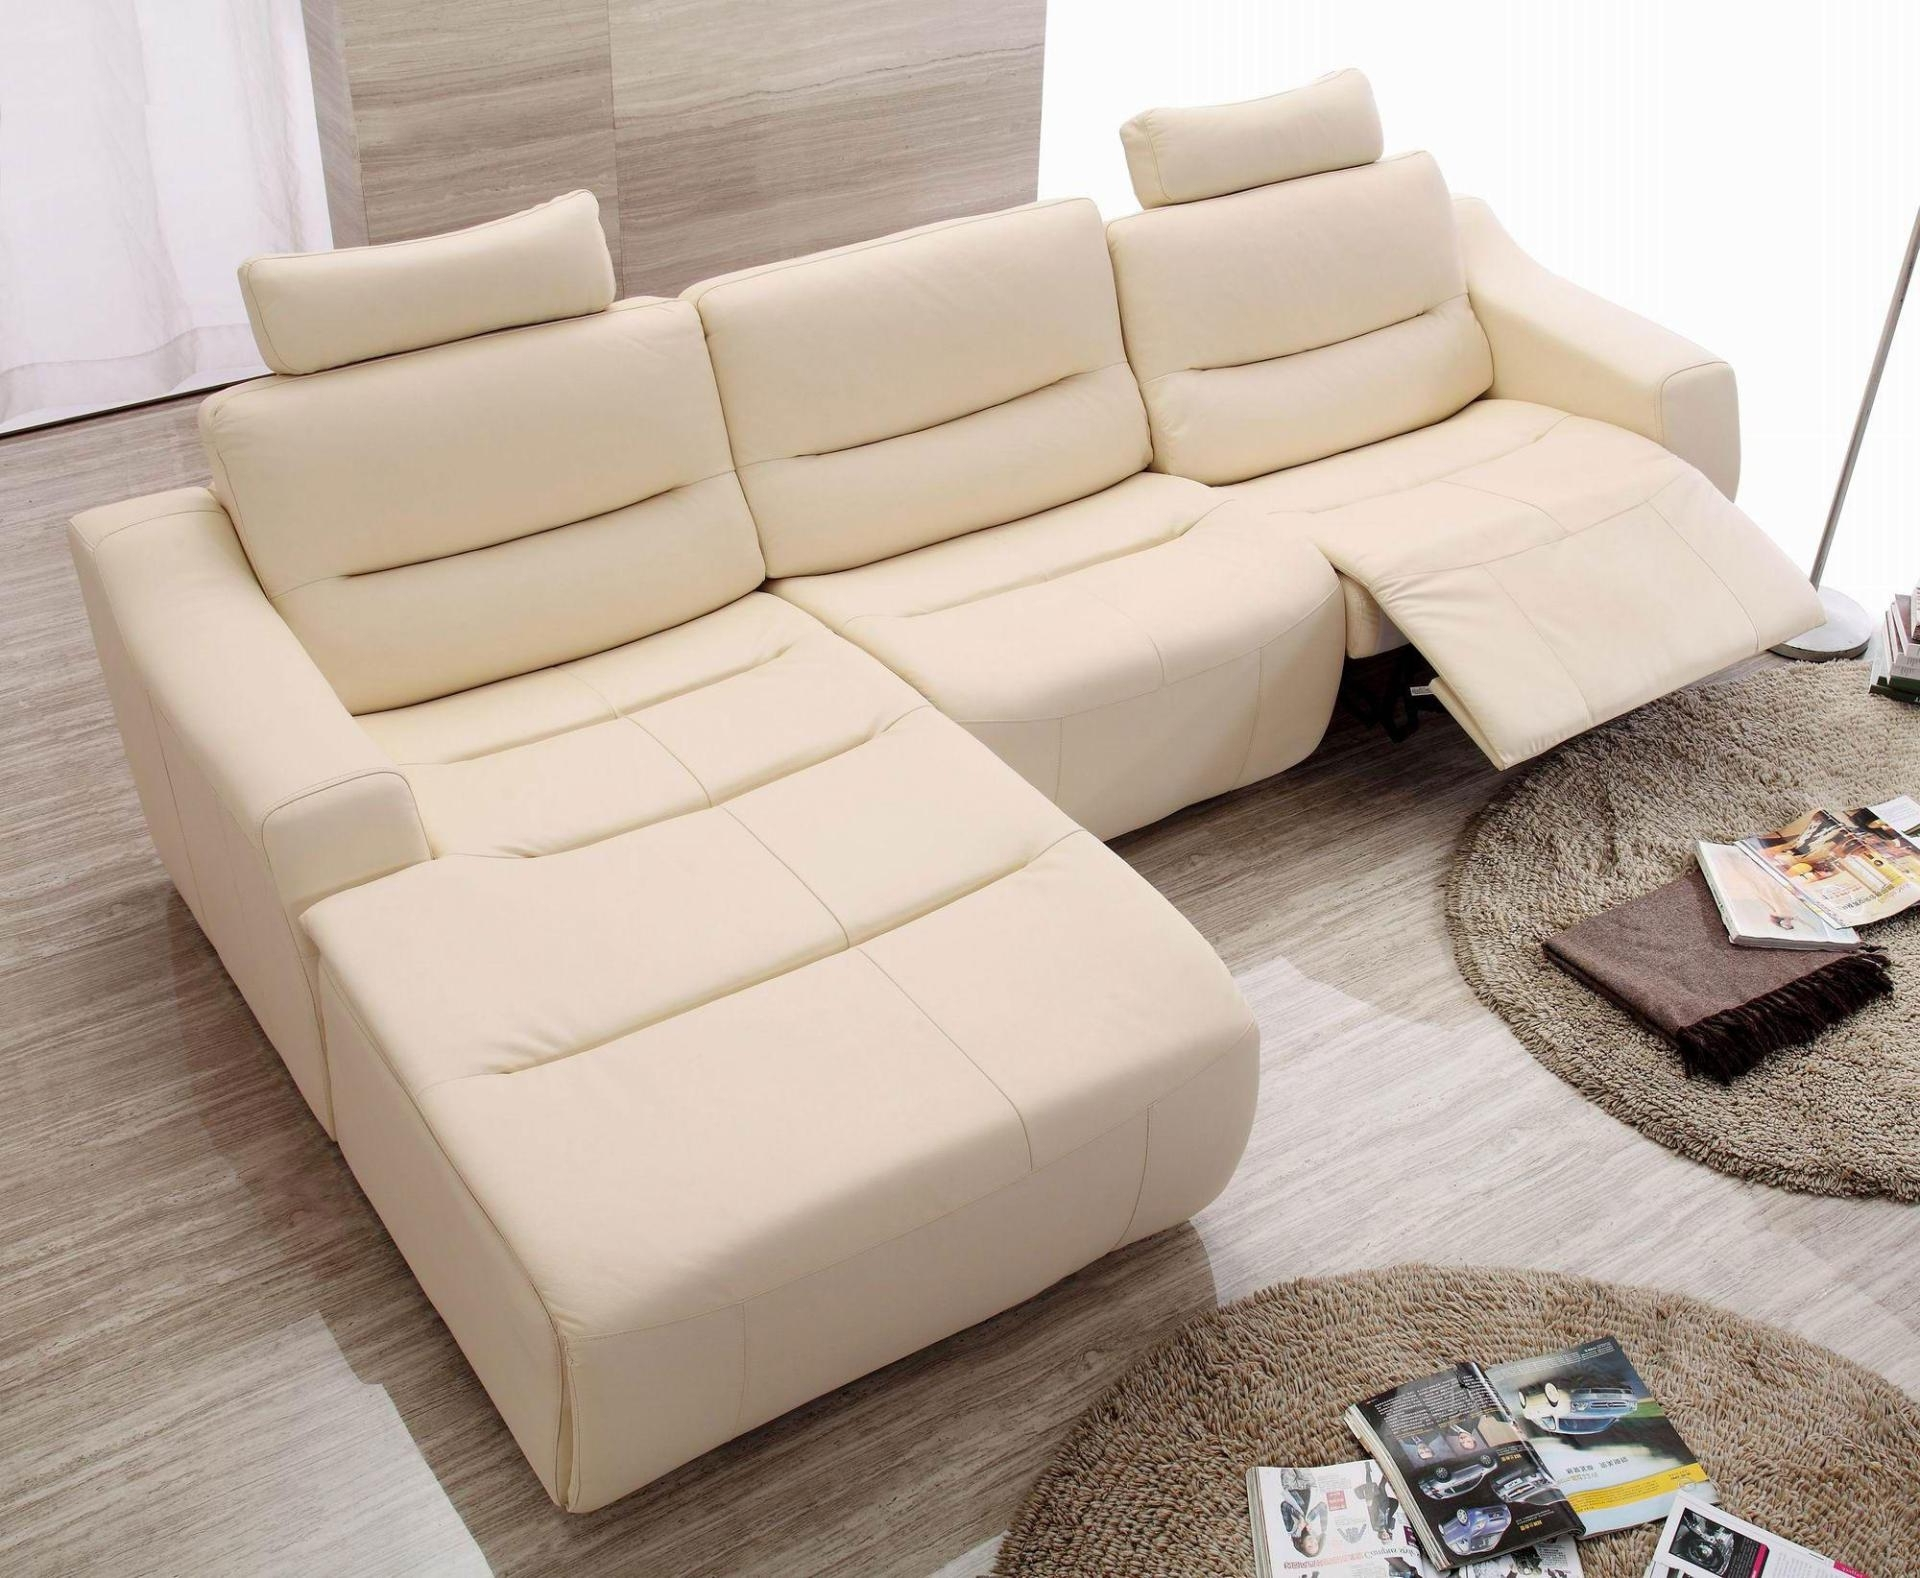 Most Recently Released 10X8 Sectional Sofas Within Sofa : Alluring Small Sectional Sofa With Recliner Apk 27801 2S (View 11 of 20)